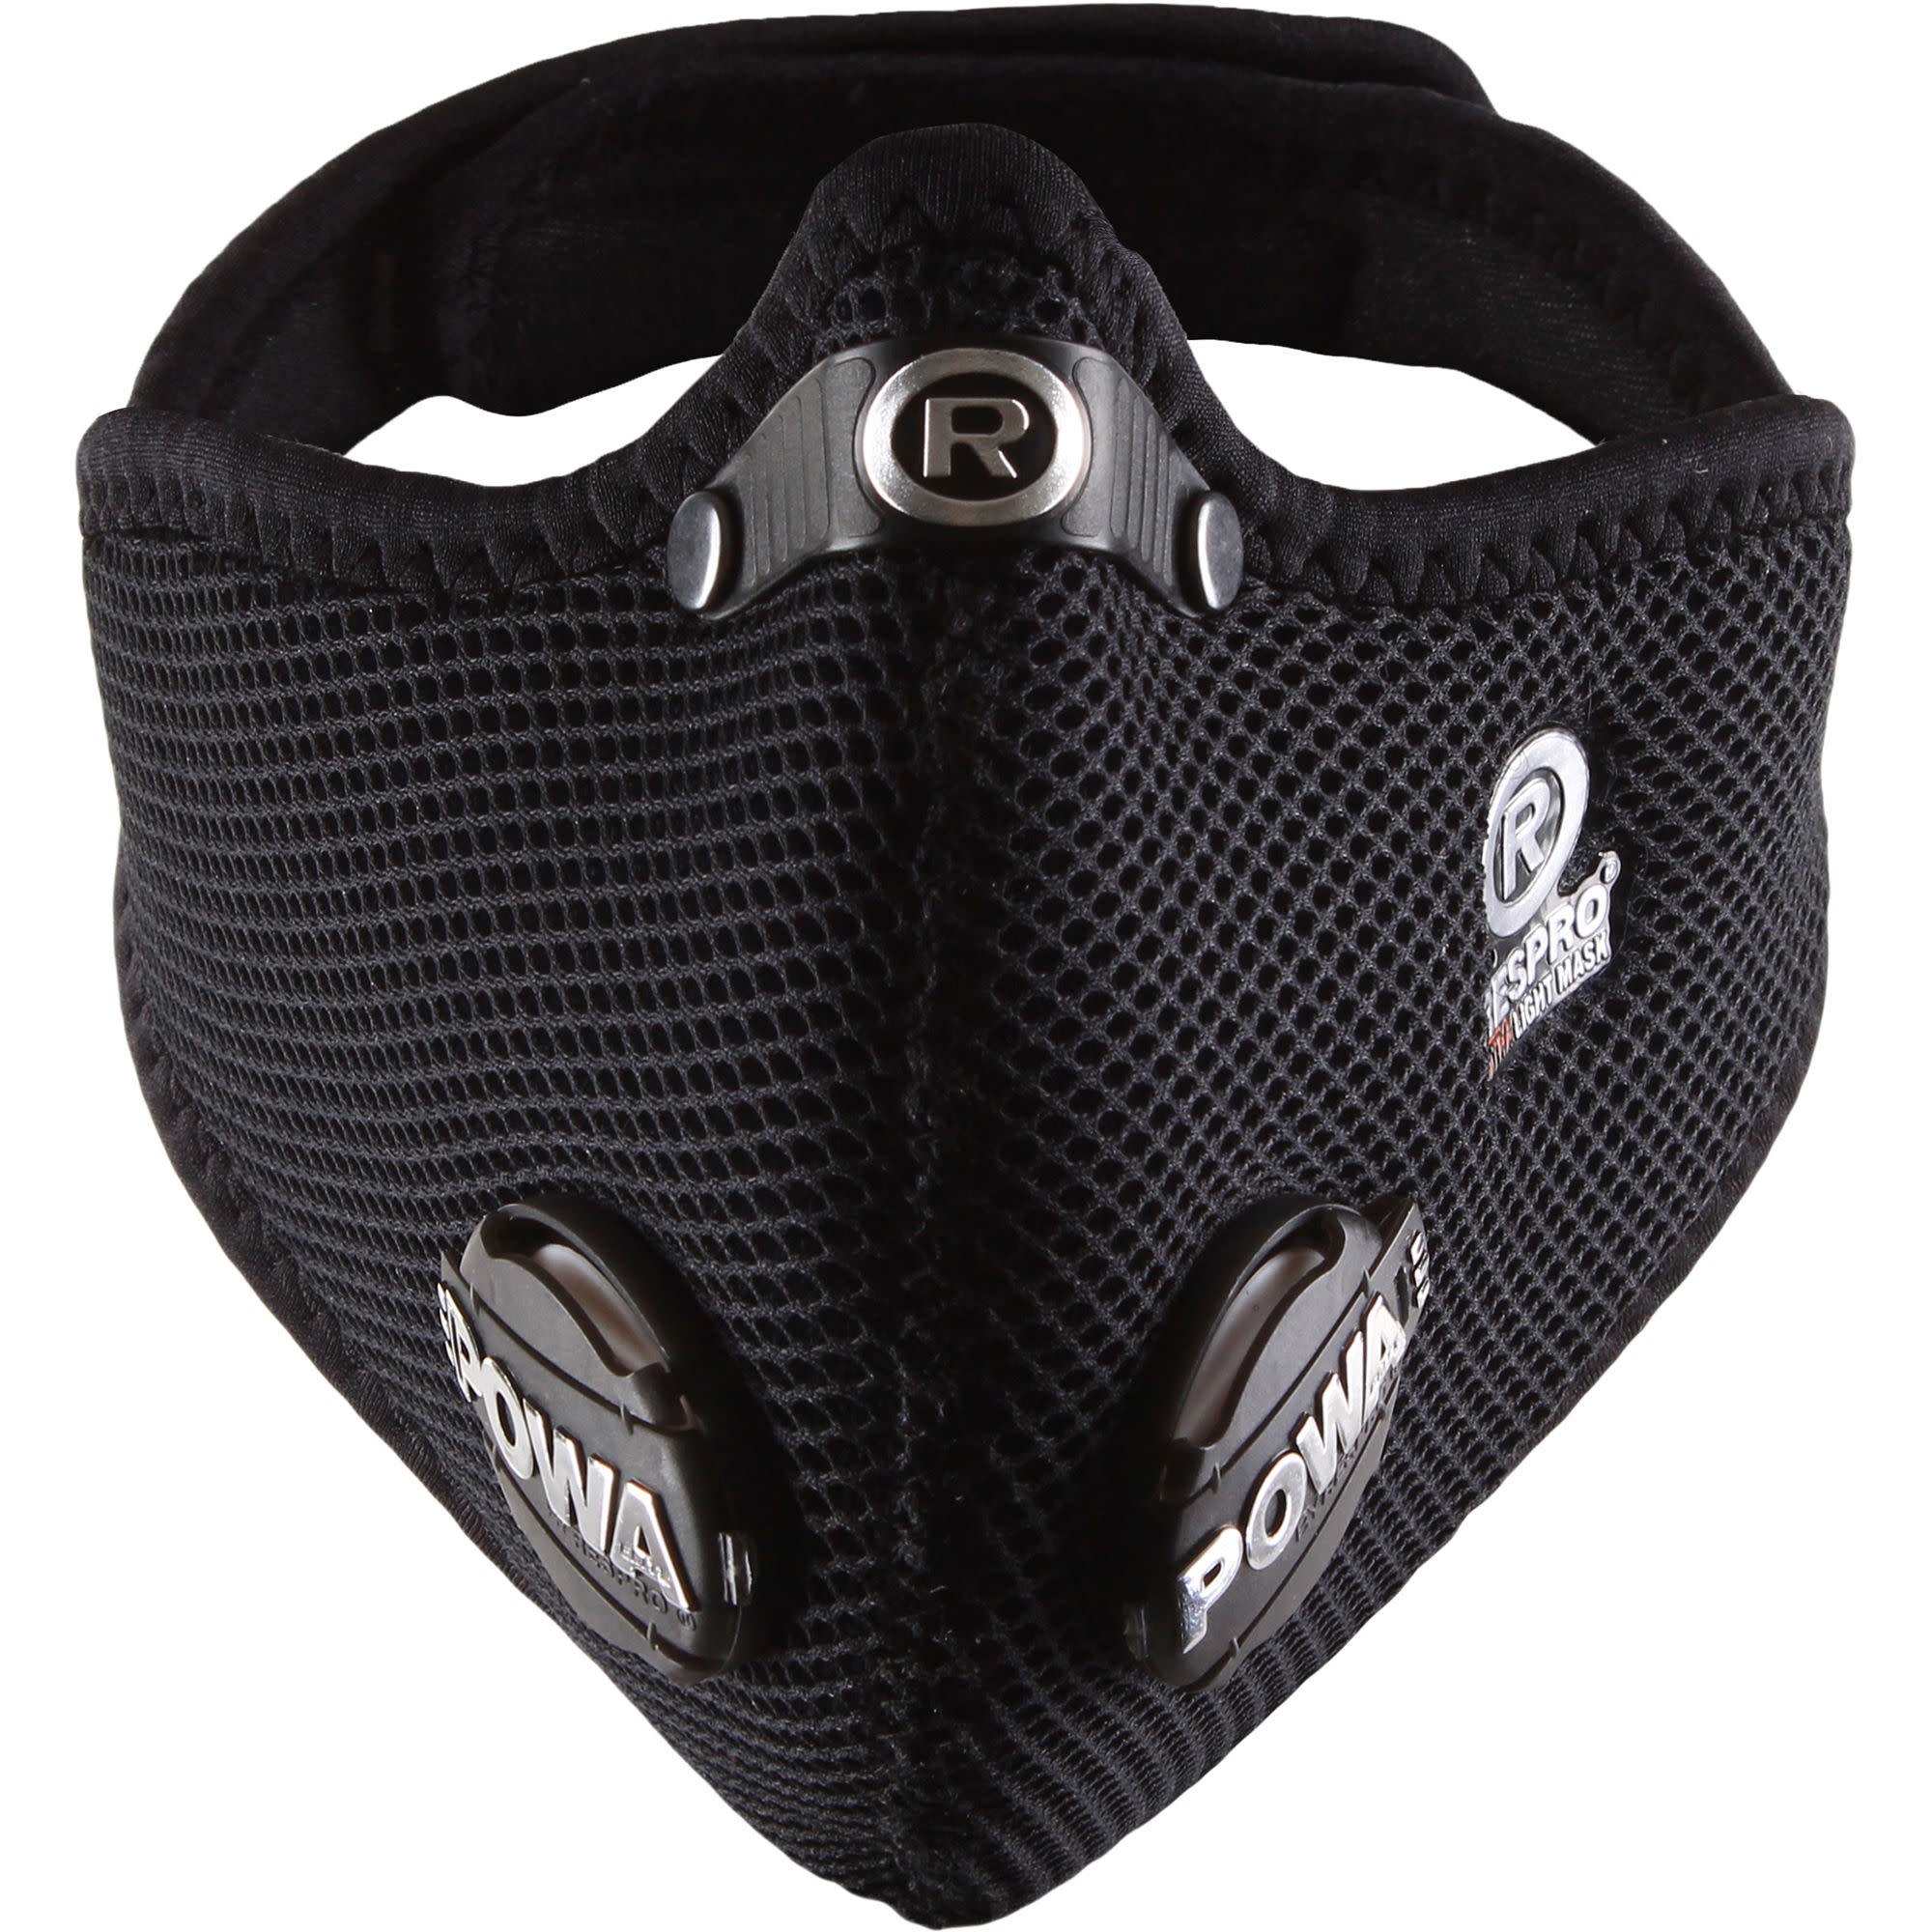 Respro MASK Respro Ultralight Black XLarge